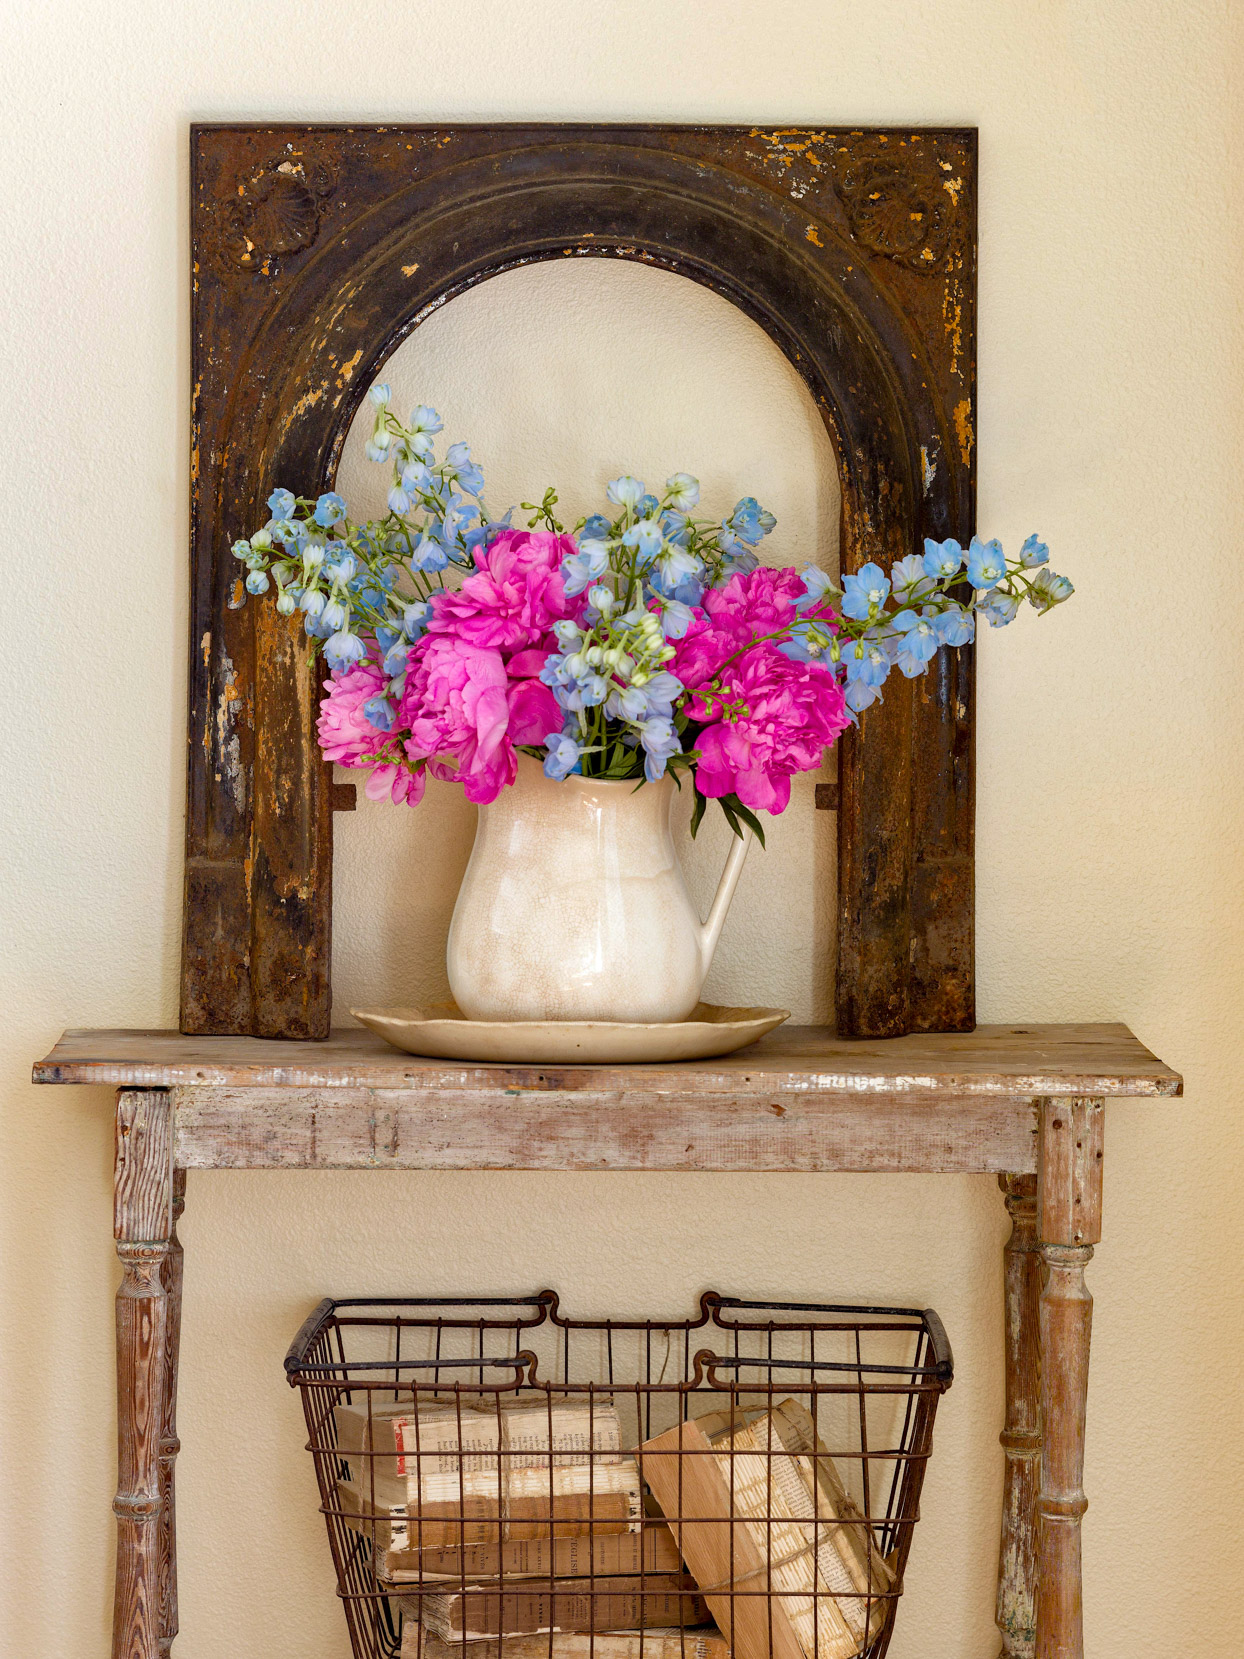 rustic antique wooden table and decorative arch with flower bouquet